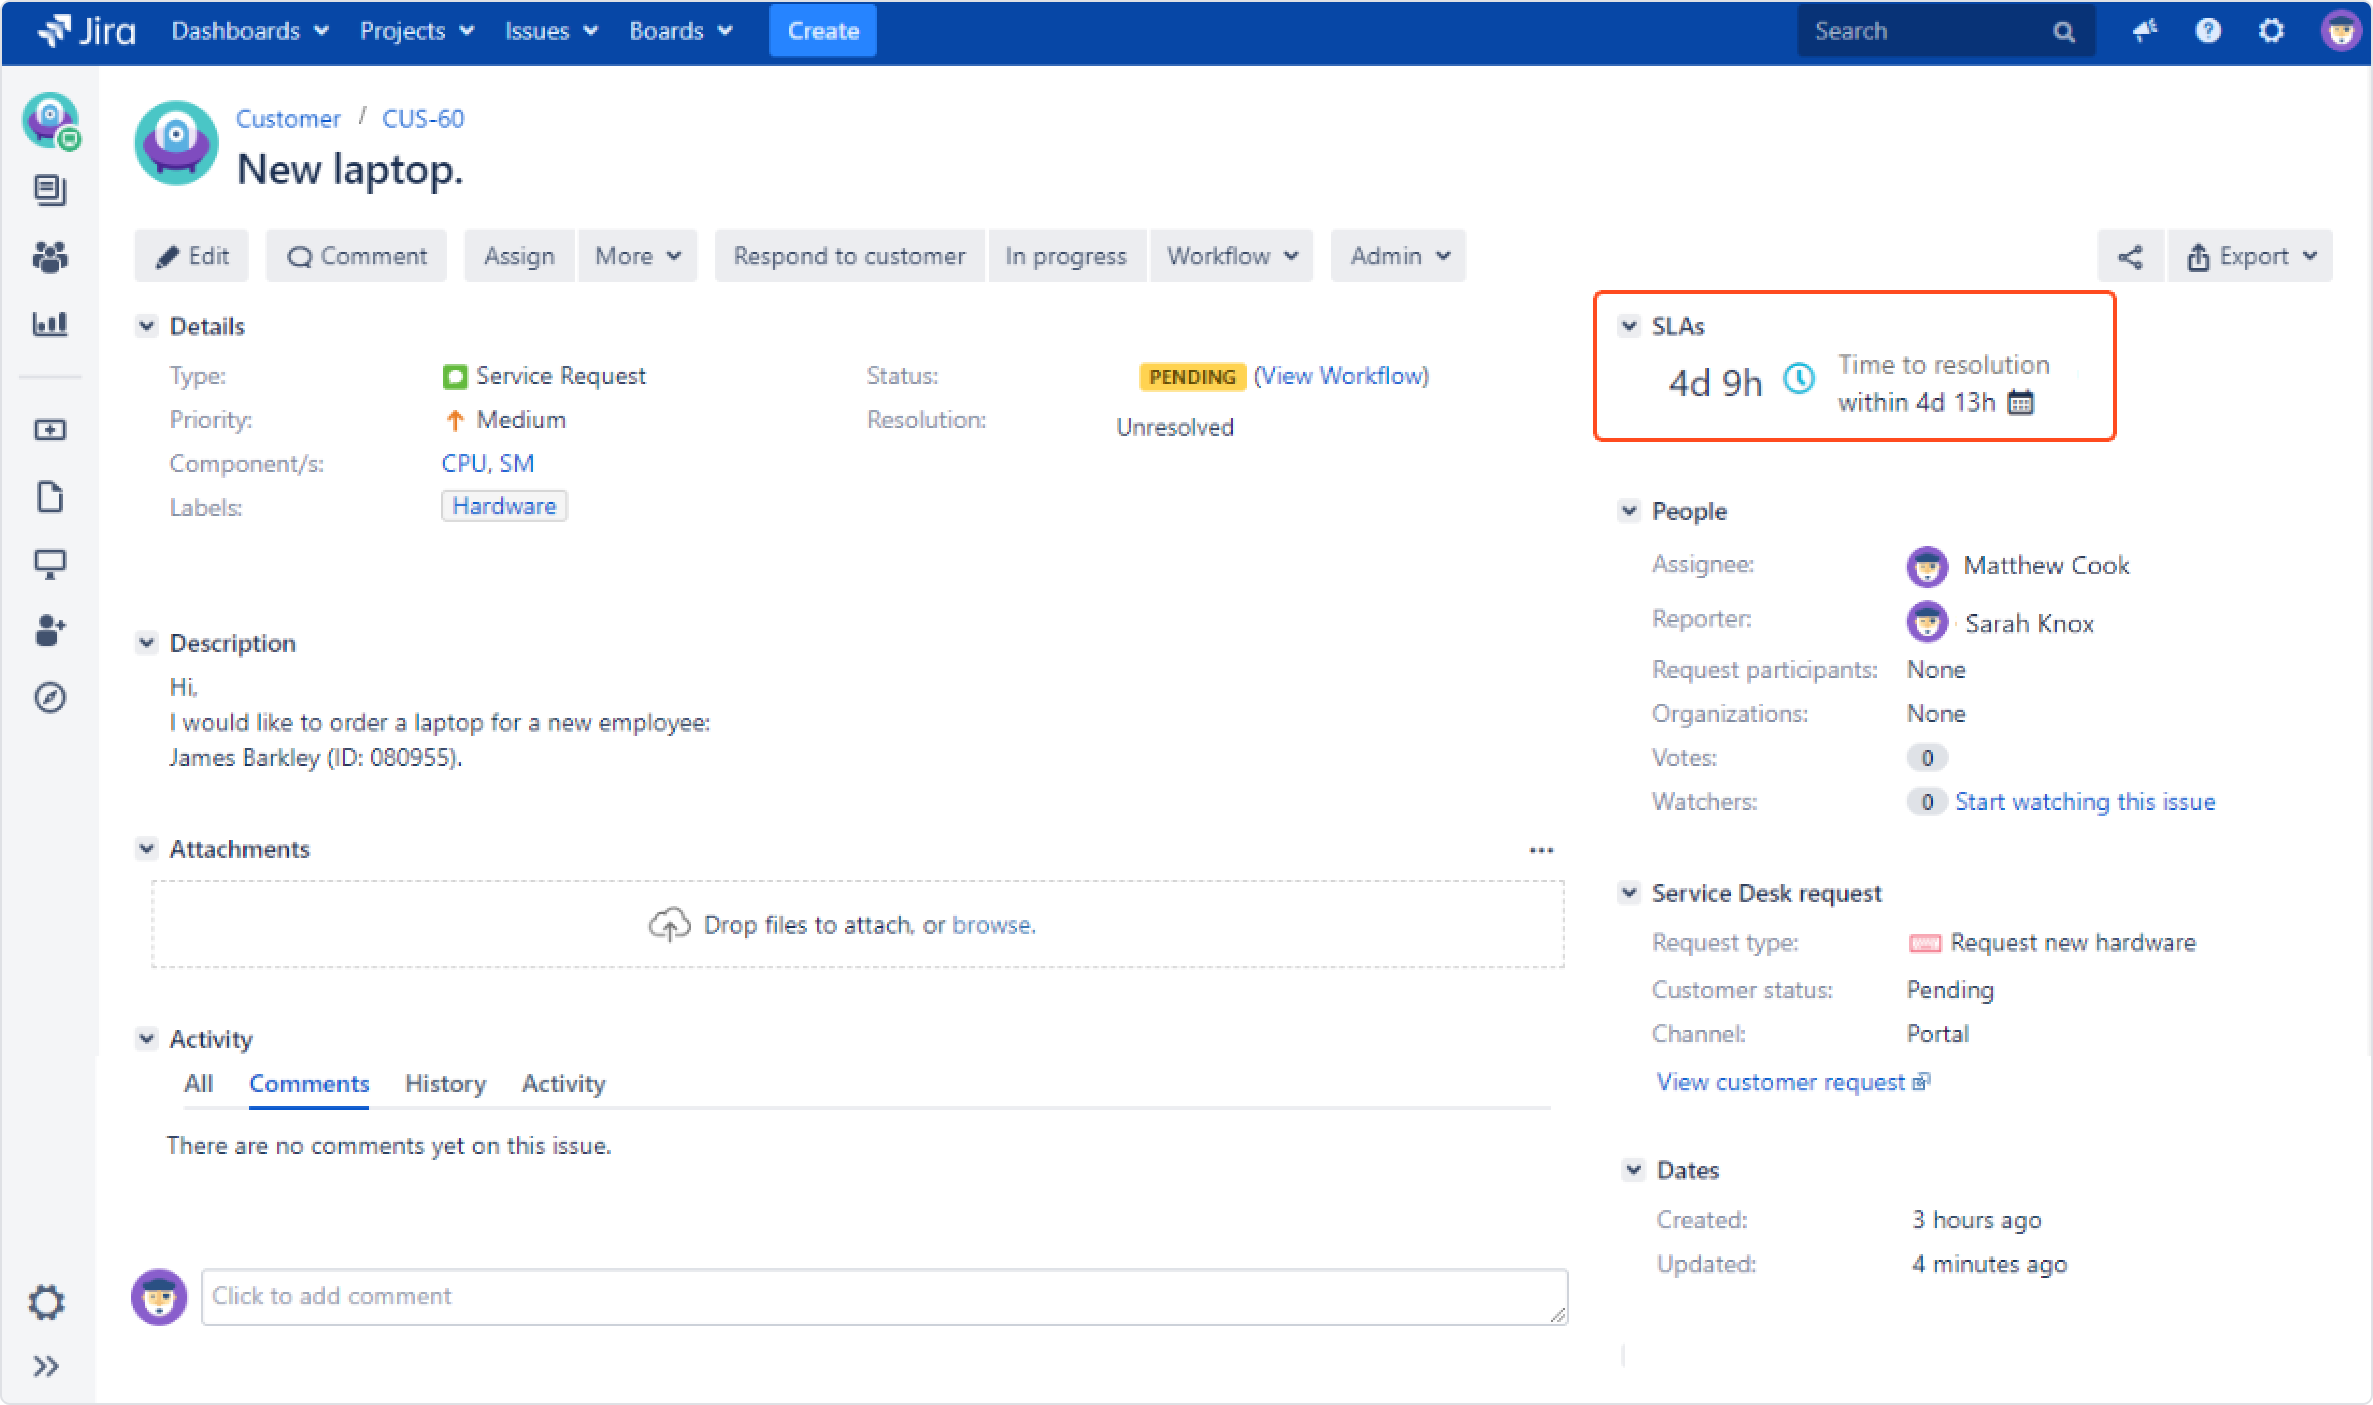 Now you can see how Update SLA to date post function works with Extension for Jira Service Desk in the issue view